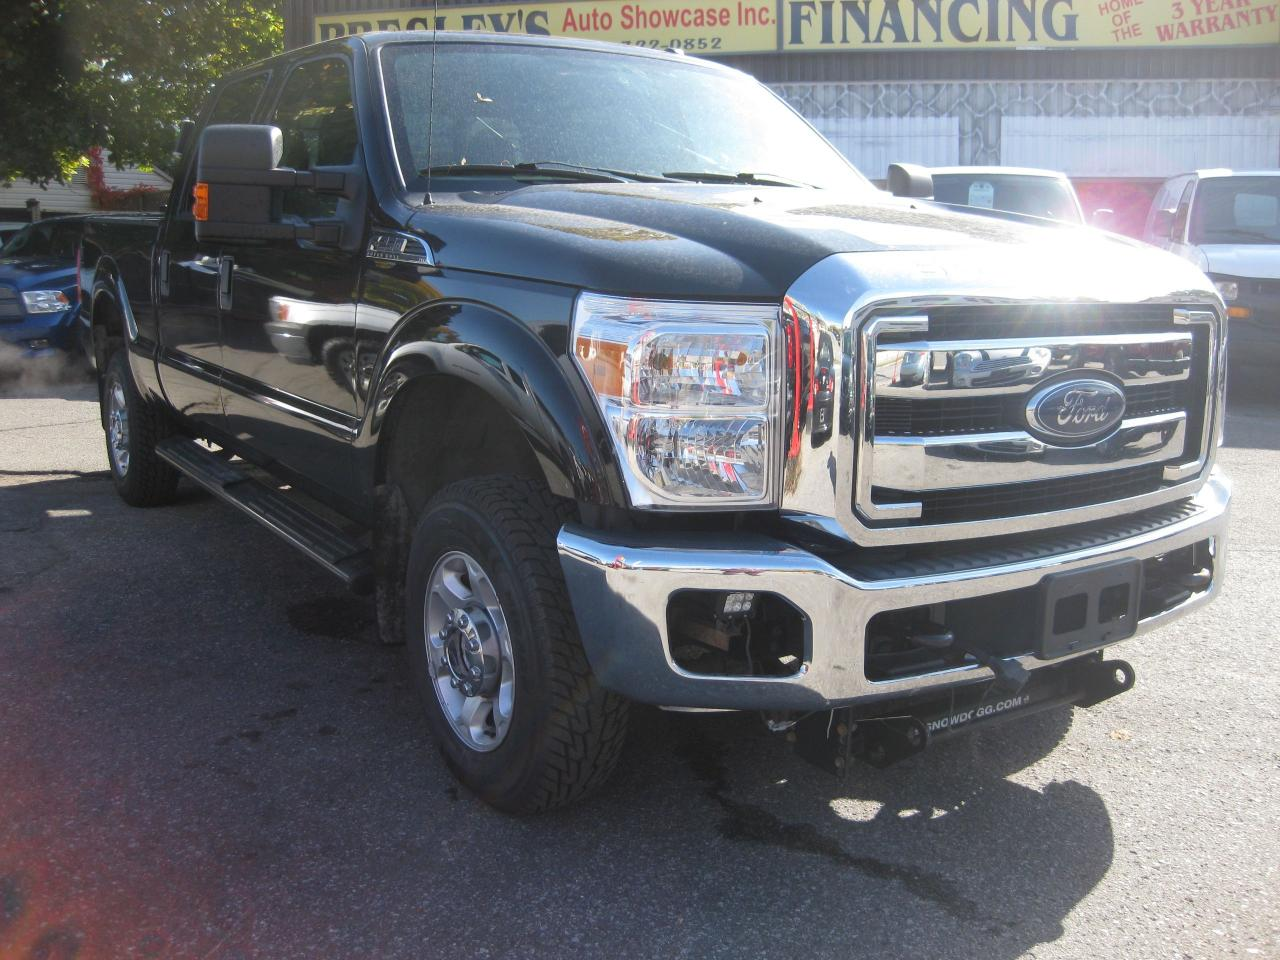 2015 Ford F-250 XLT 6.2L V8 4x4 Crew Super Duty with Plow